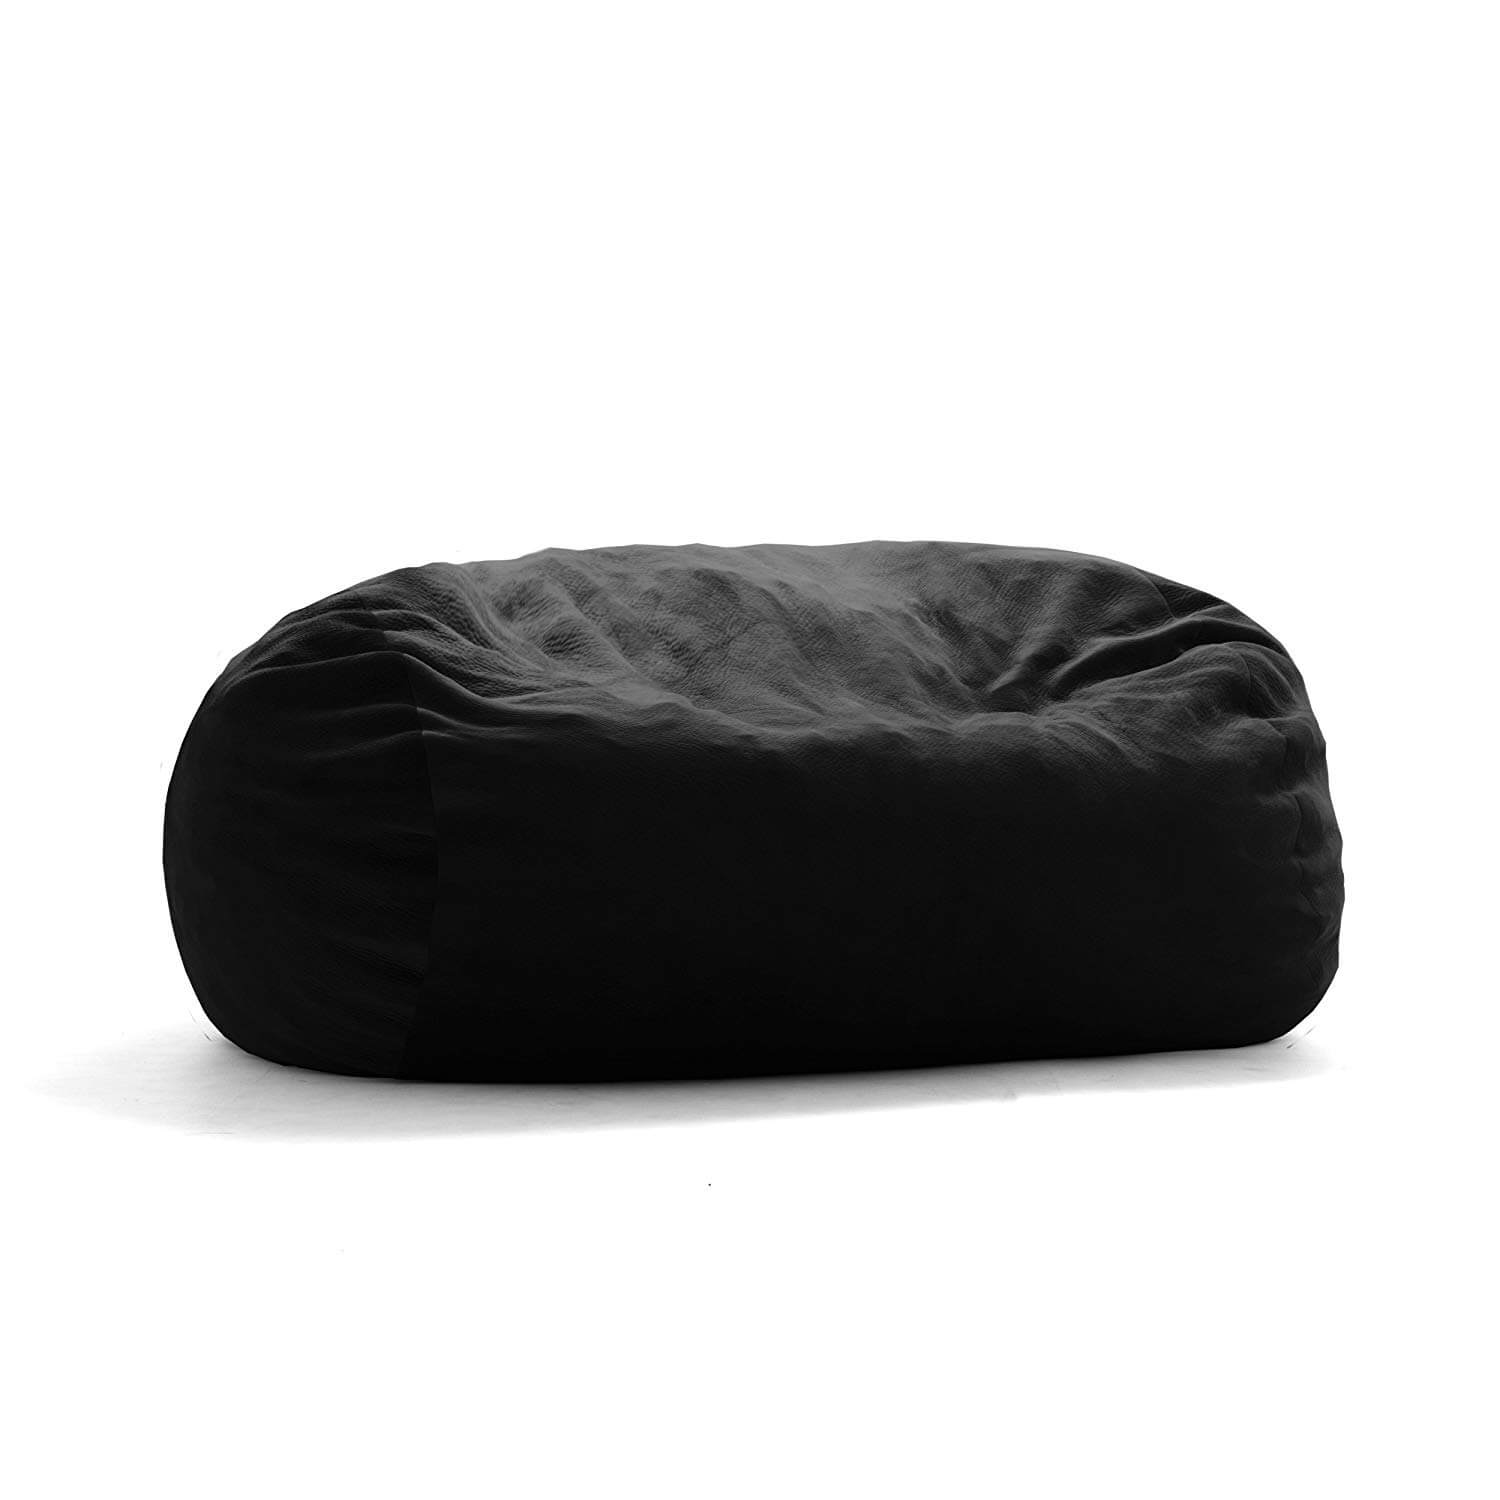 Big Joe Lux XXL Fuf Foam Filled Bean Bag Chair Ripple Black  sc 1 st  Ultimate Game Chair & Big Joe XXL Fuf Foam Filled Bean Bag Chair Review